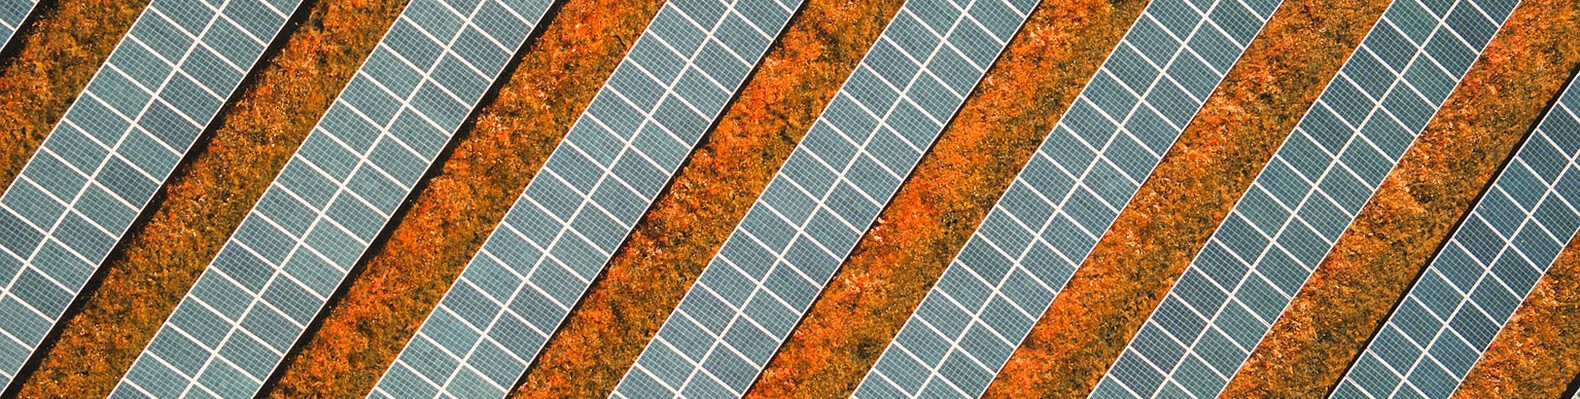 rows of solar panels in a desert